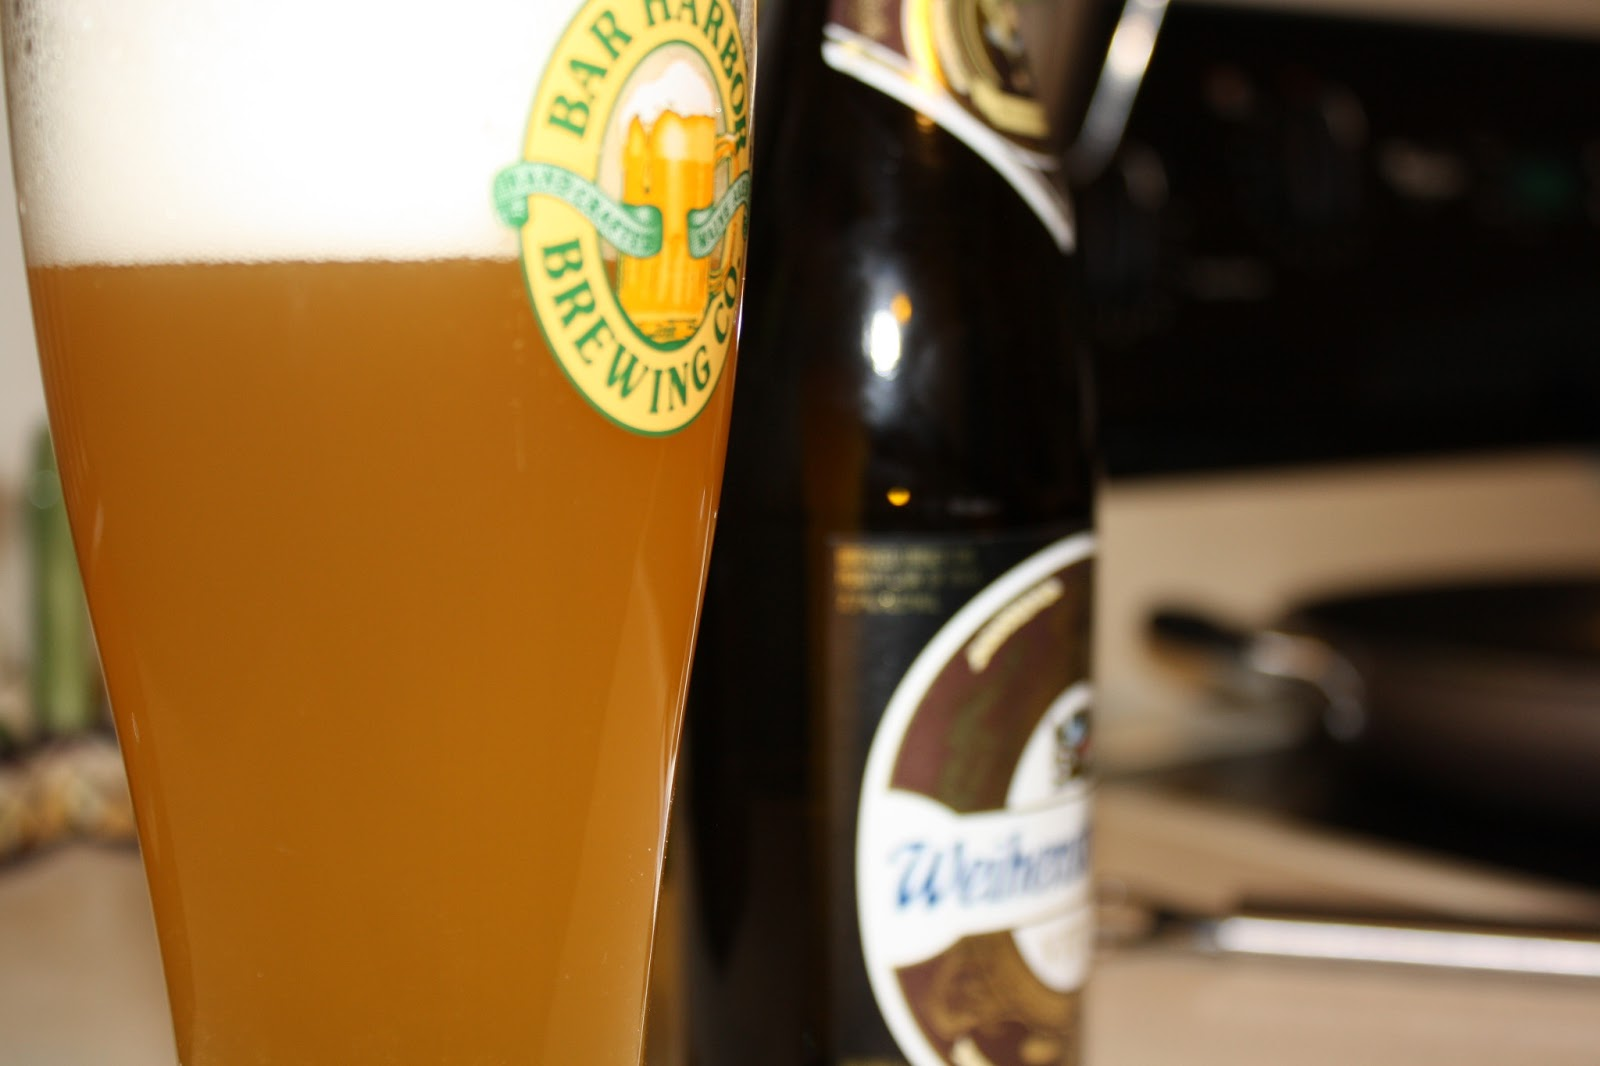 Close-up of Weihenstephaner Vitus